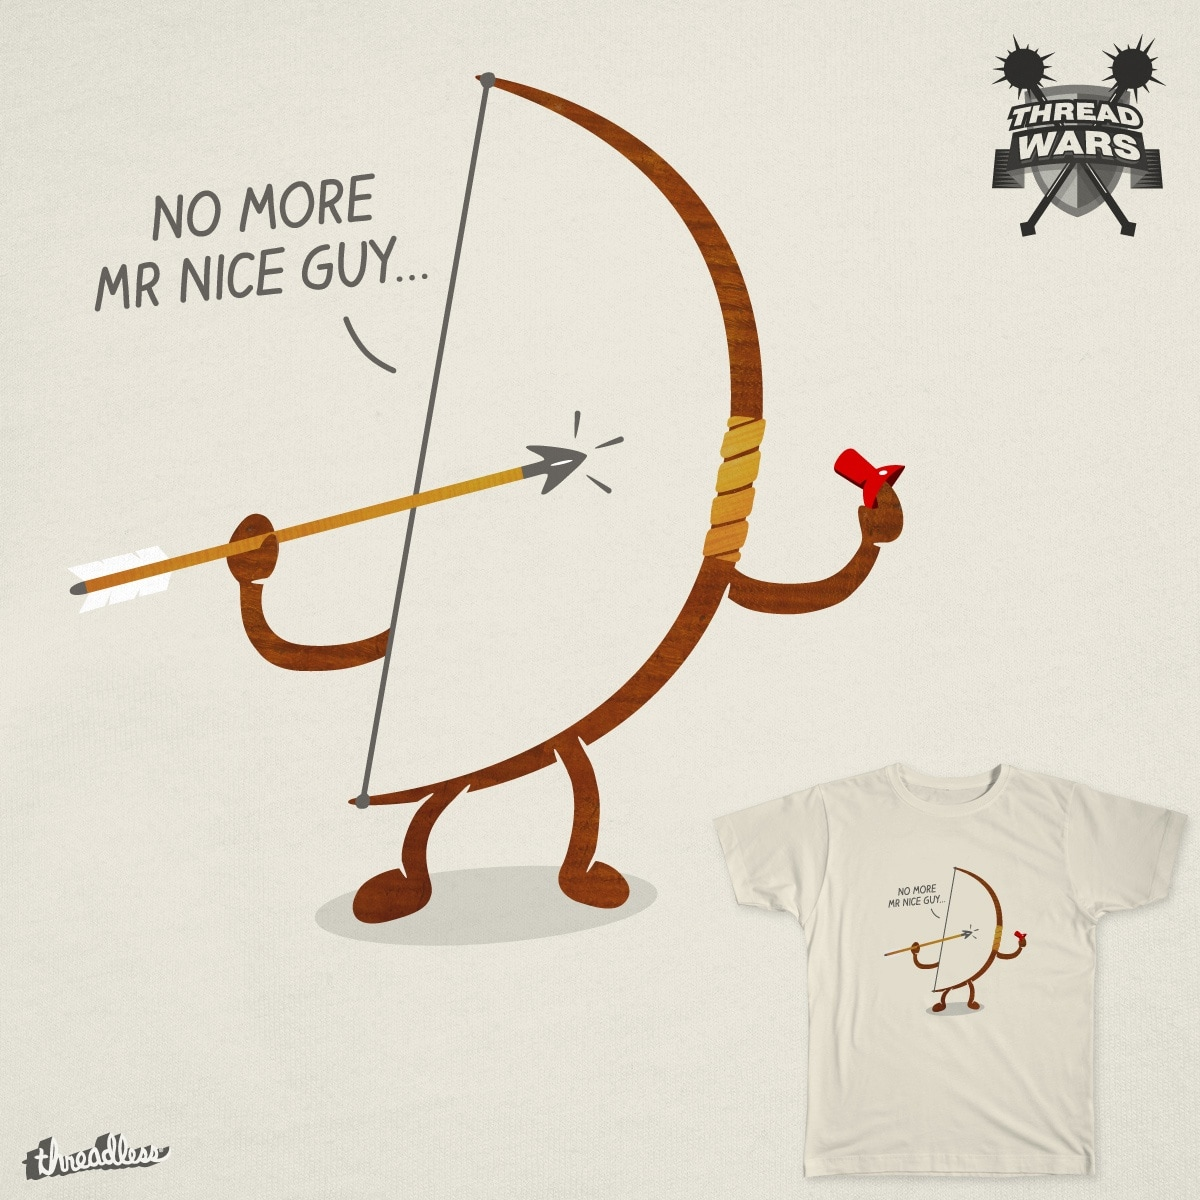 No More Mr Nice Guy by melmike on Threadless